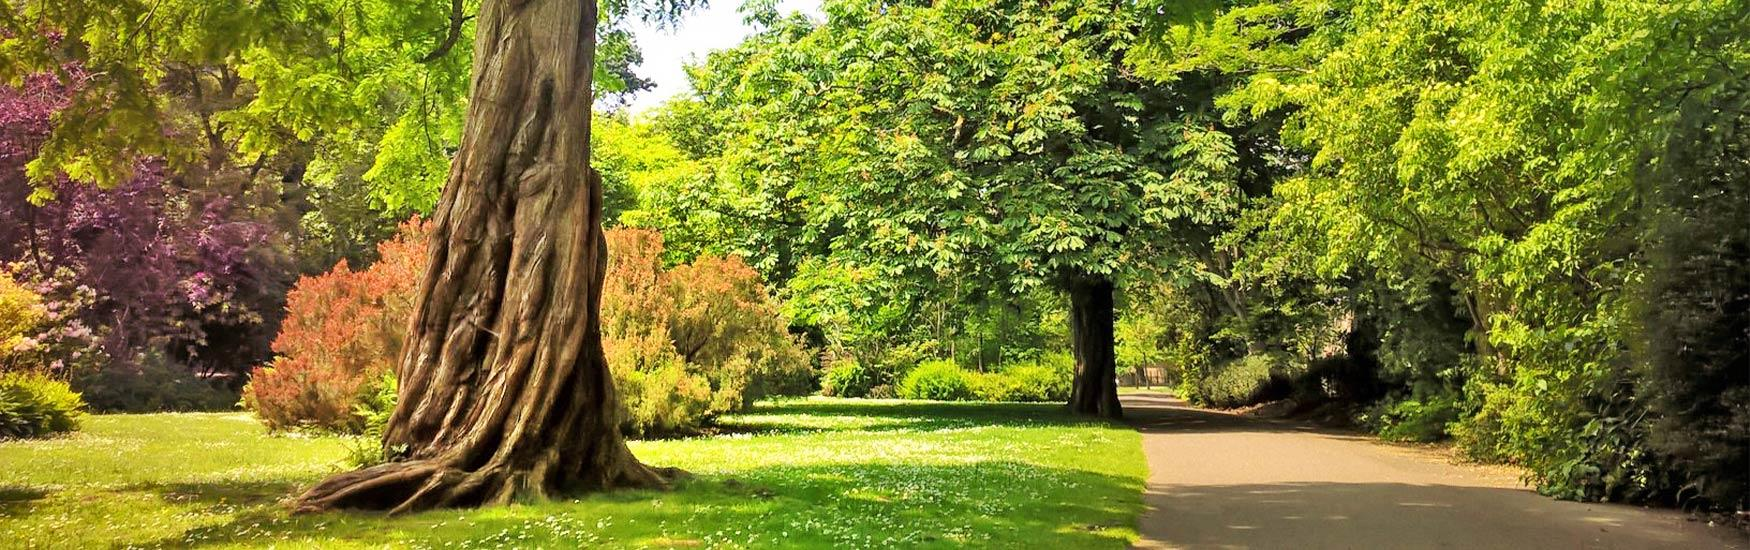 Summer shot of the trees and walkway in Bournemouth Central Gardens